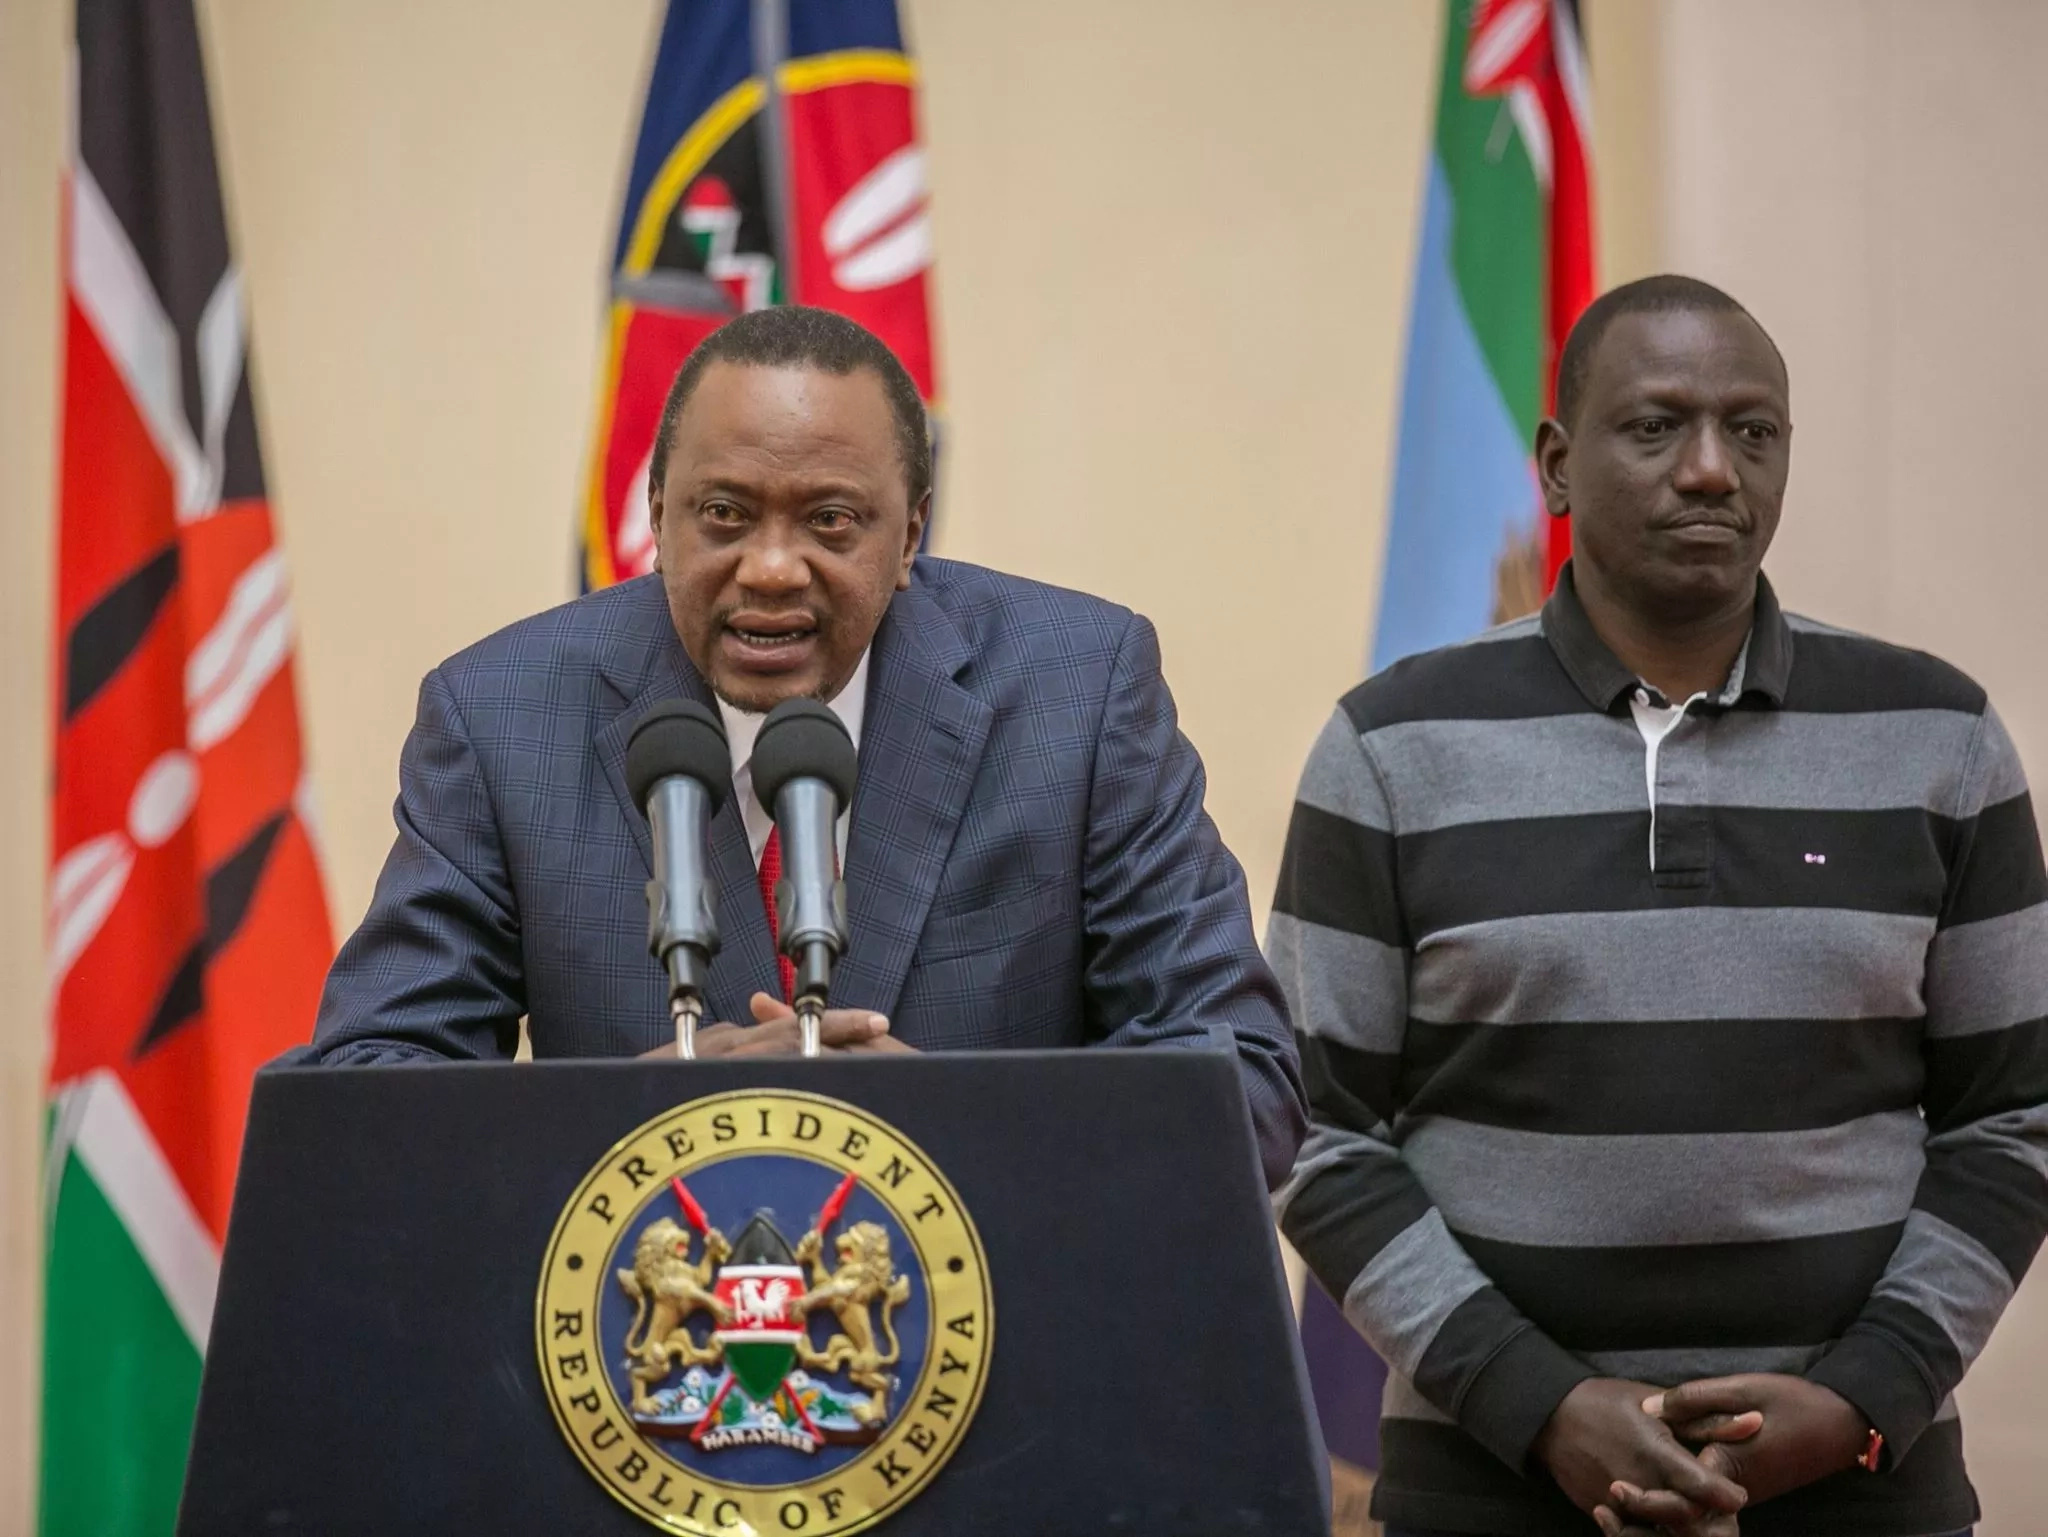 Opposition welcomes Kenya's Supreme Court ruling